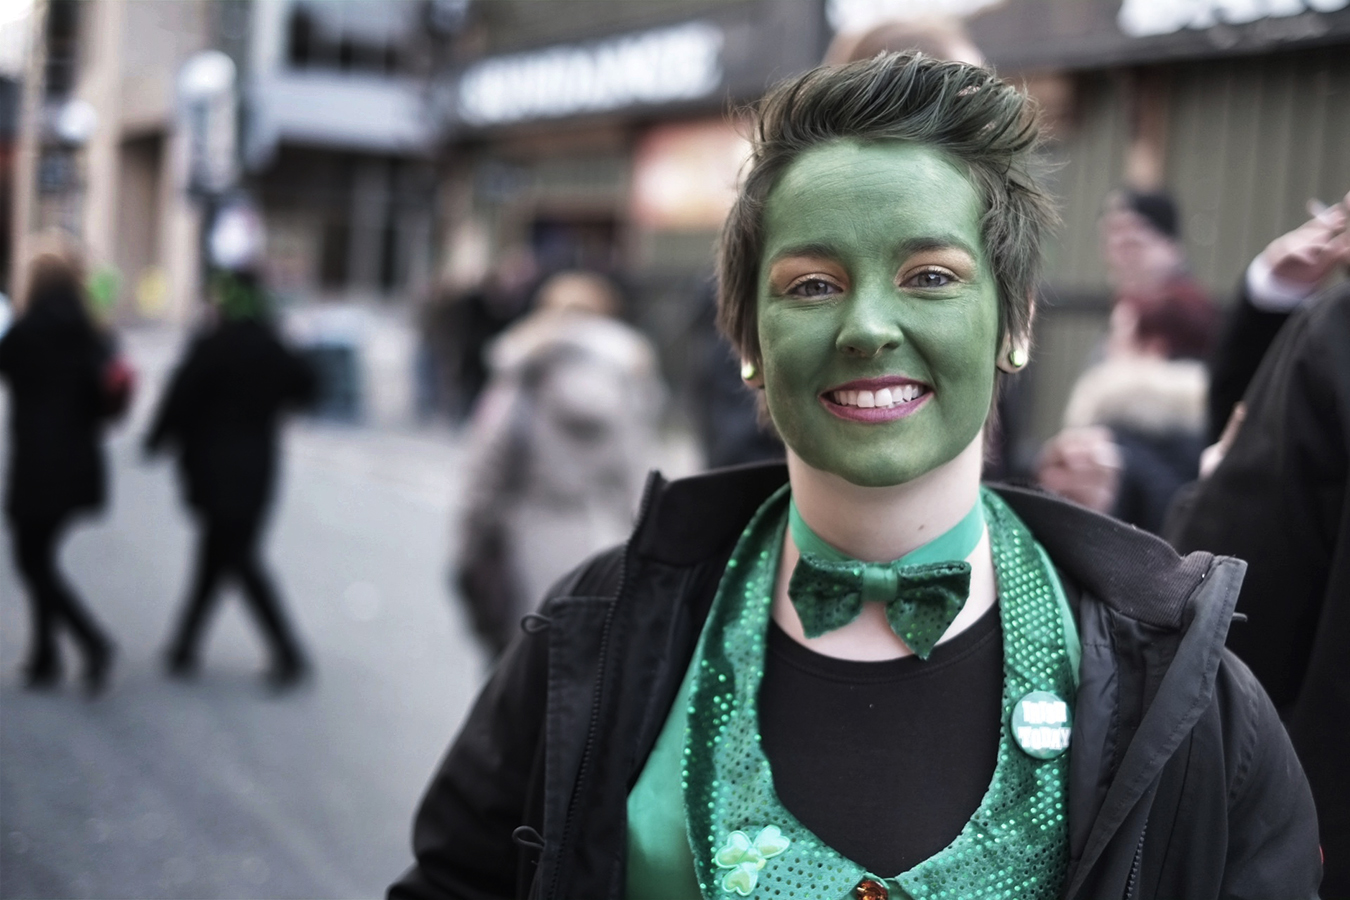 Someone is geared up for a green evening - Happy St. Patricks Day - George Street